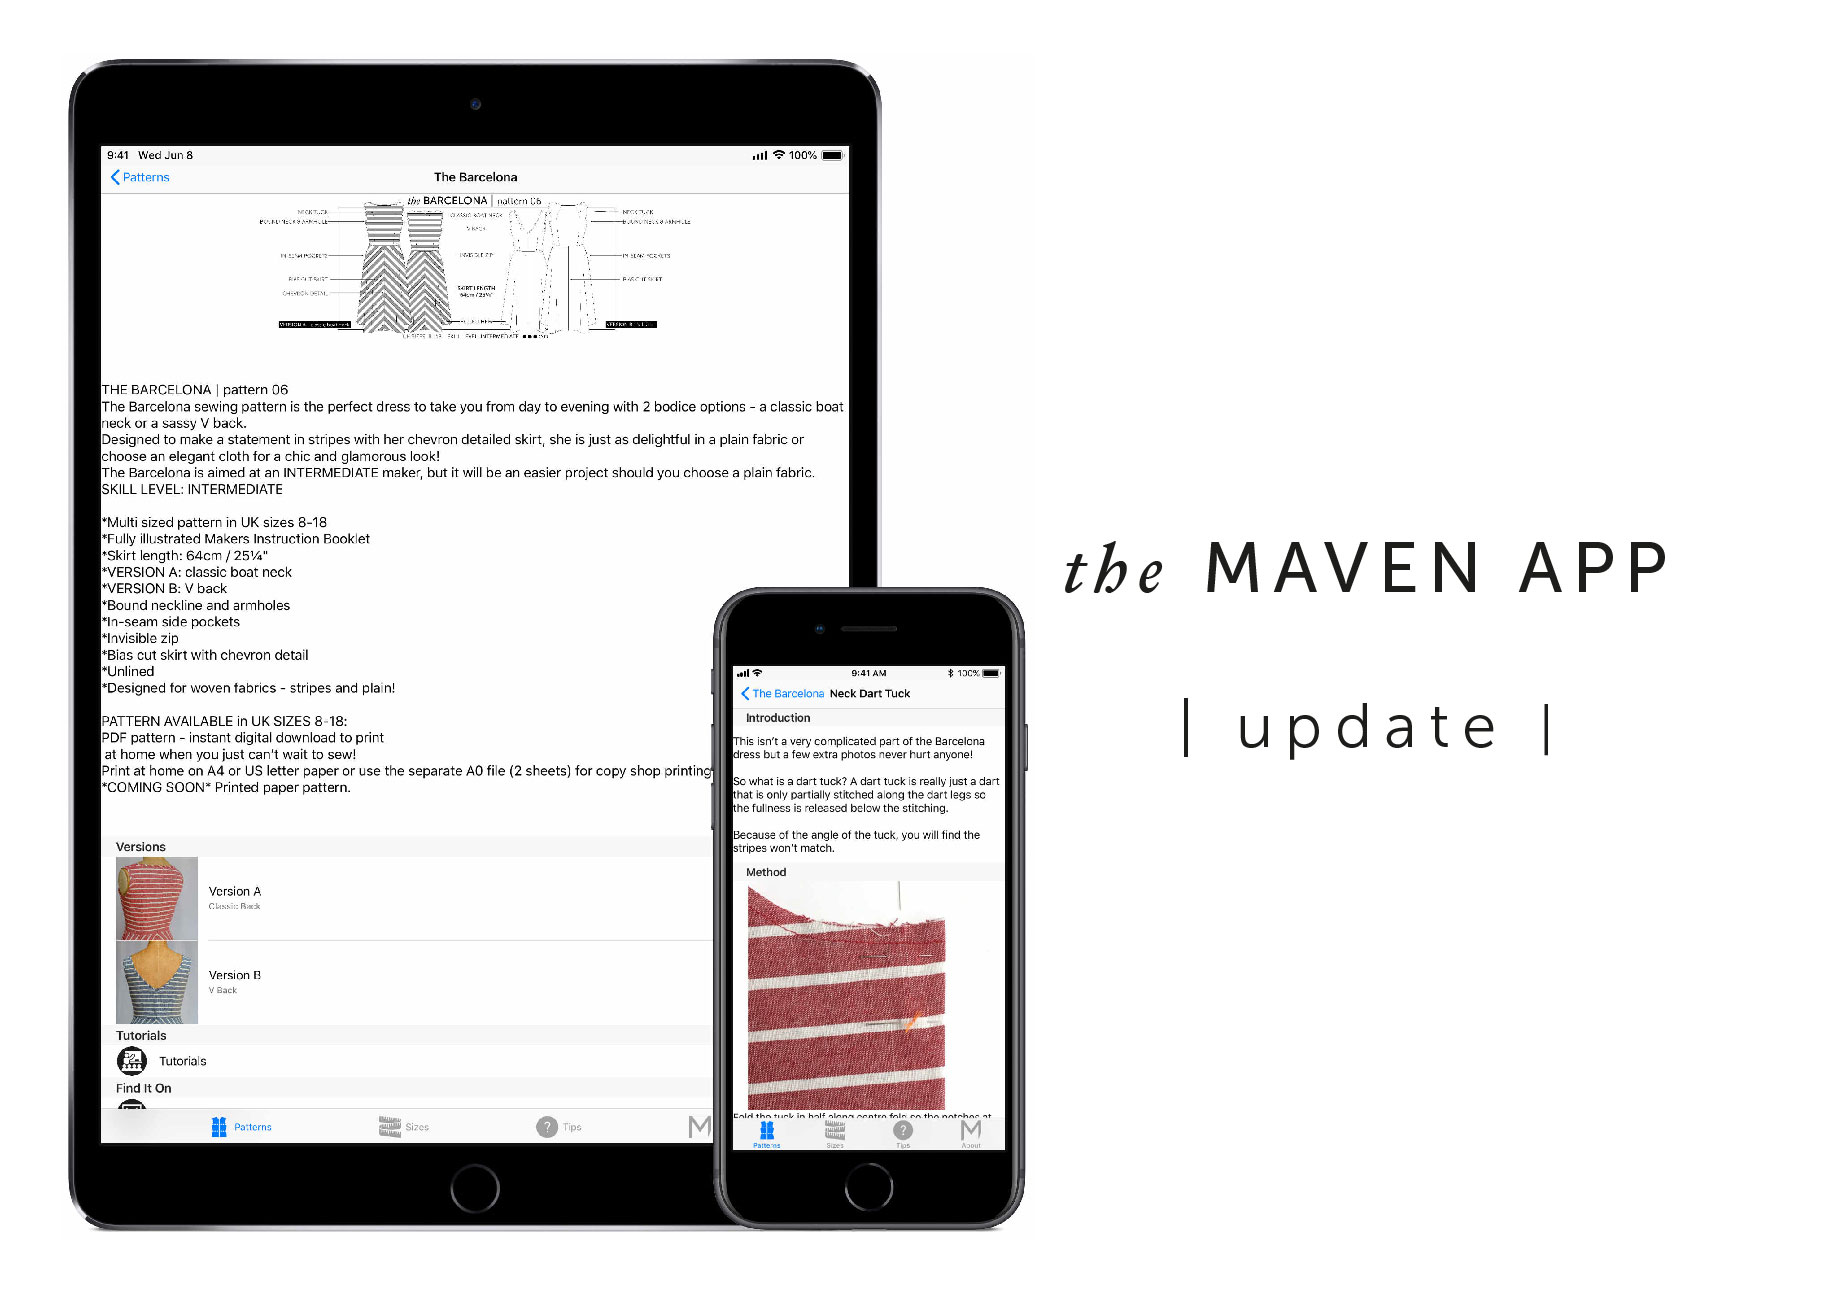 The Maven App - update! - Maven Patterns